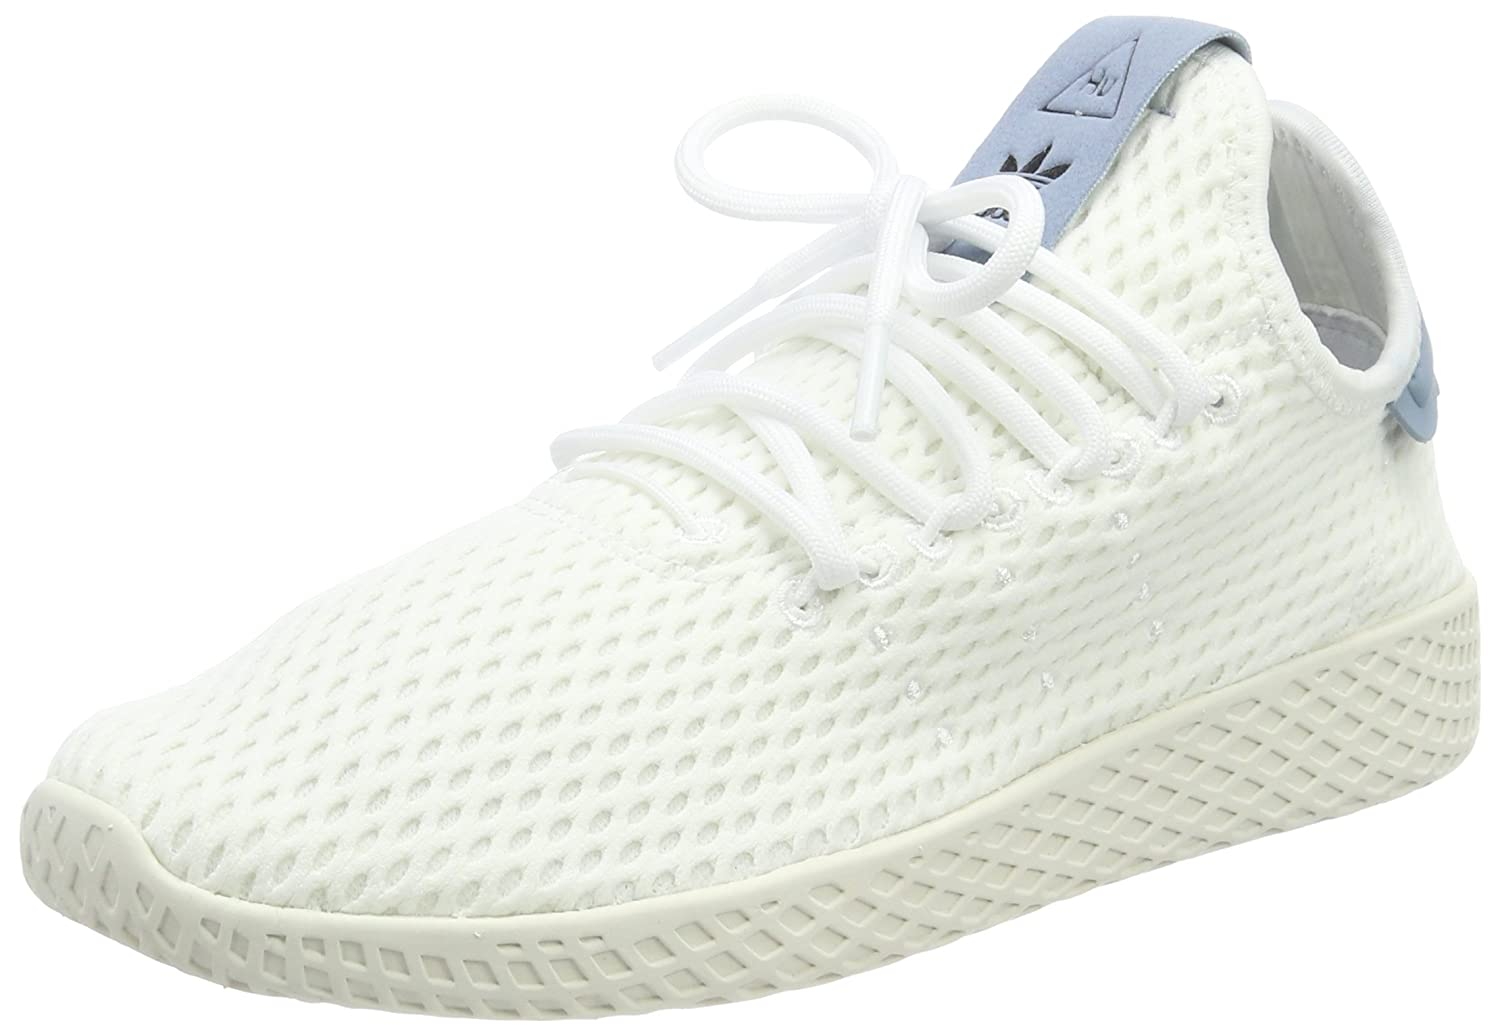 80723a5b5 Amazon.com  Adidas Pharrell Williams Tennis Hu Mens Sneakers White  Sports    Outdoors